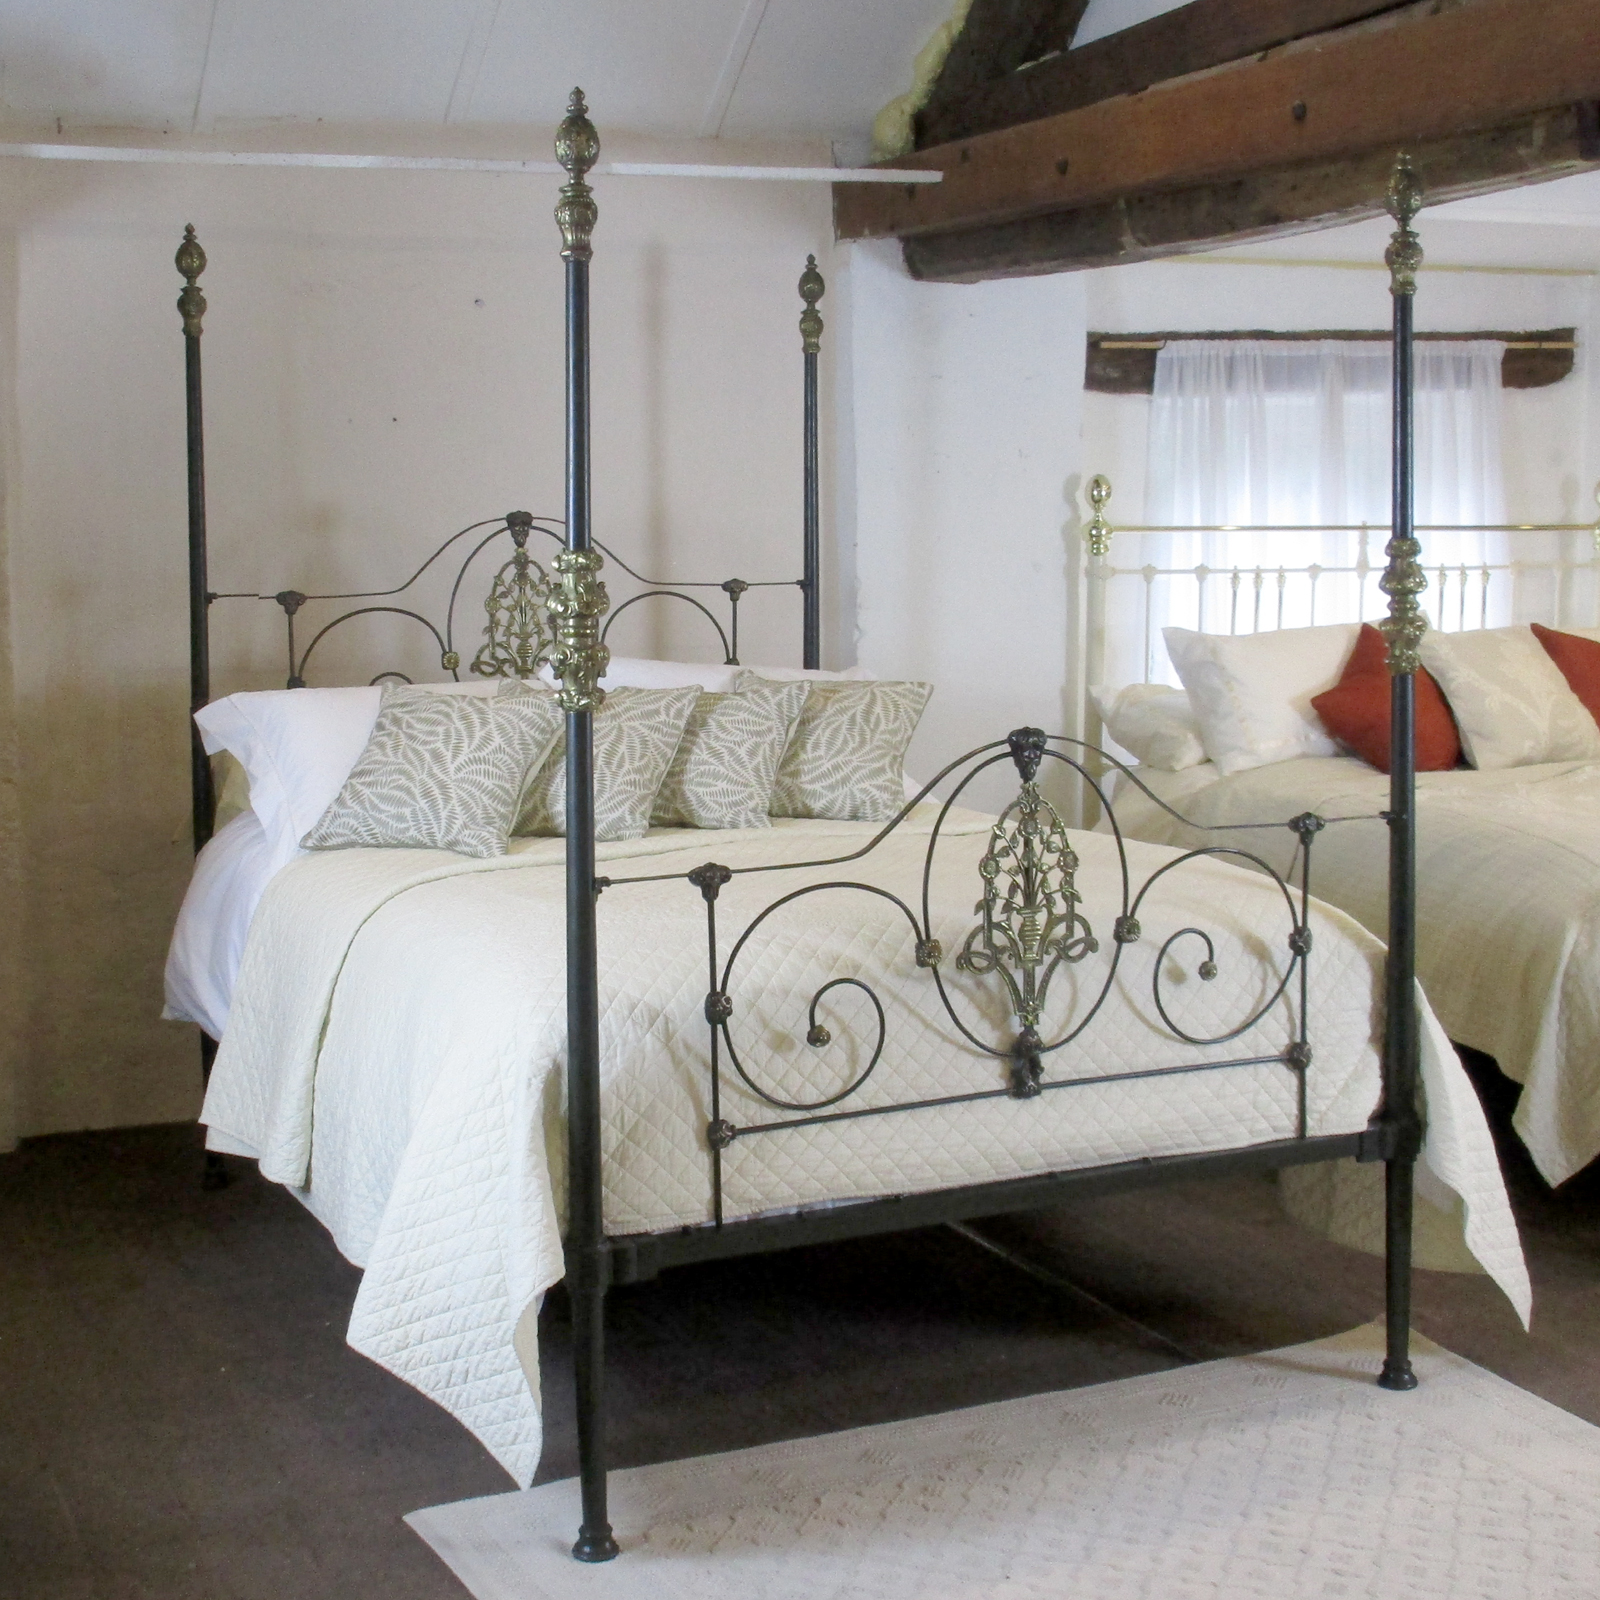 Cast iron four poster bed m4p11 - Bedspreads for four poster beds ...